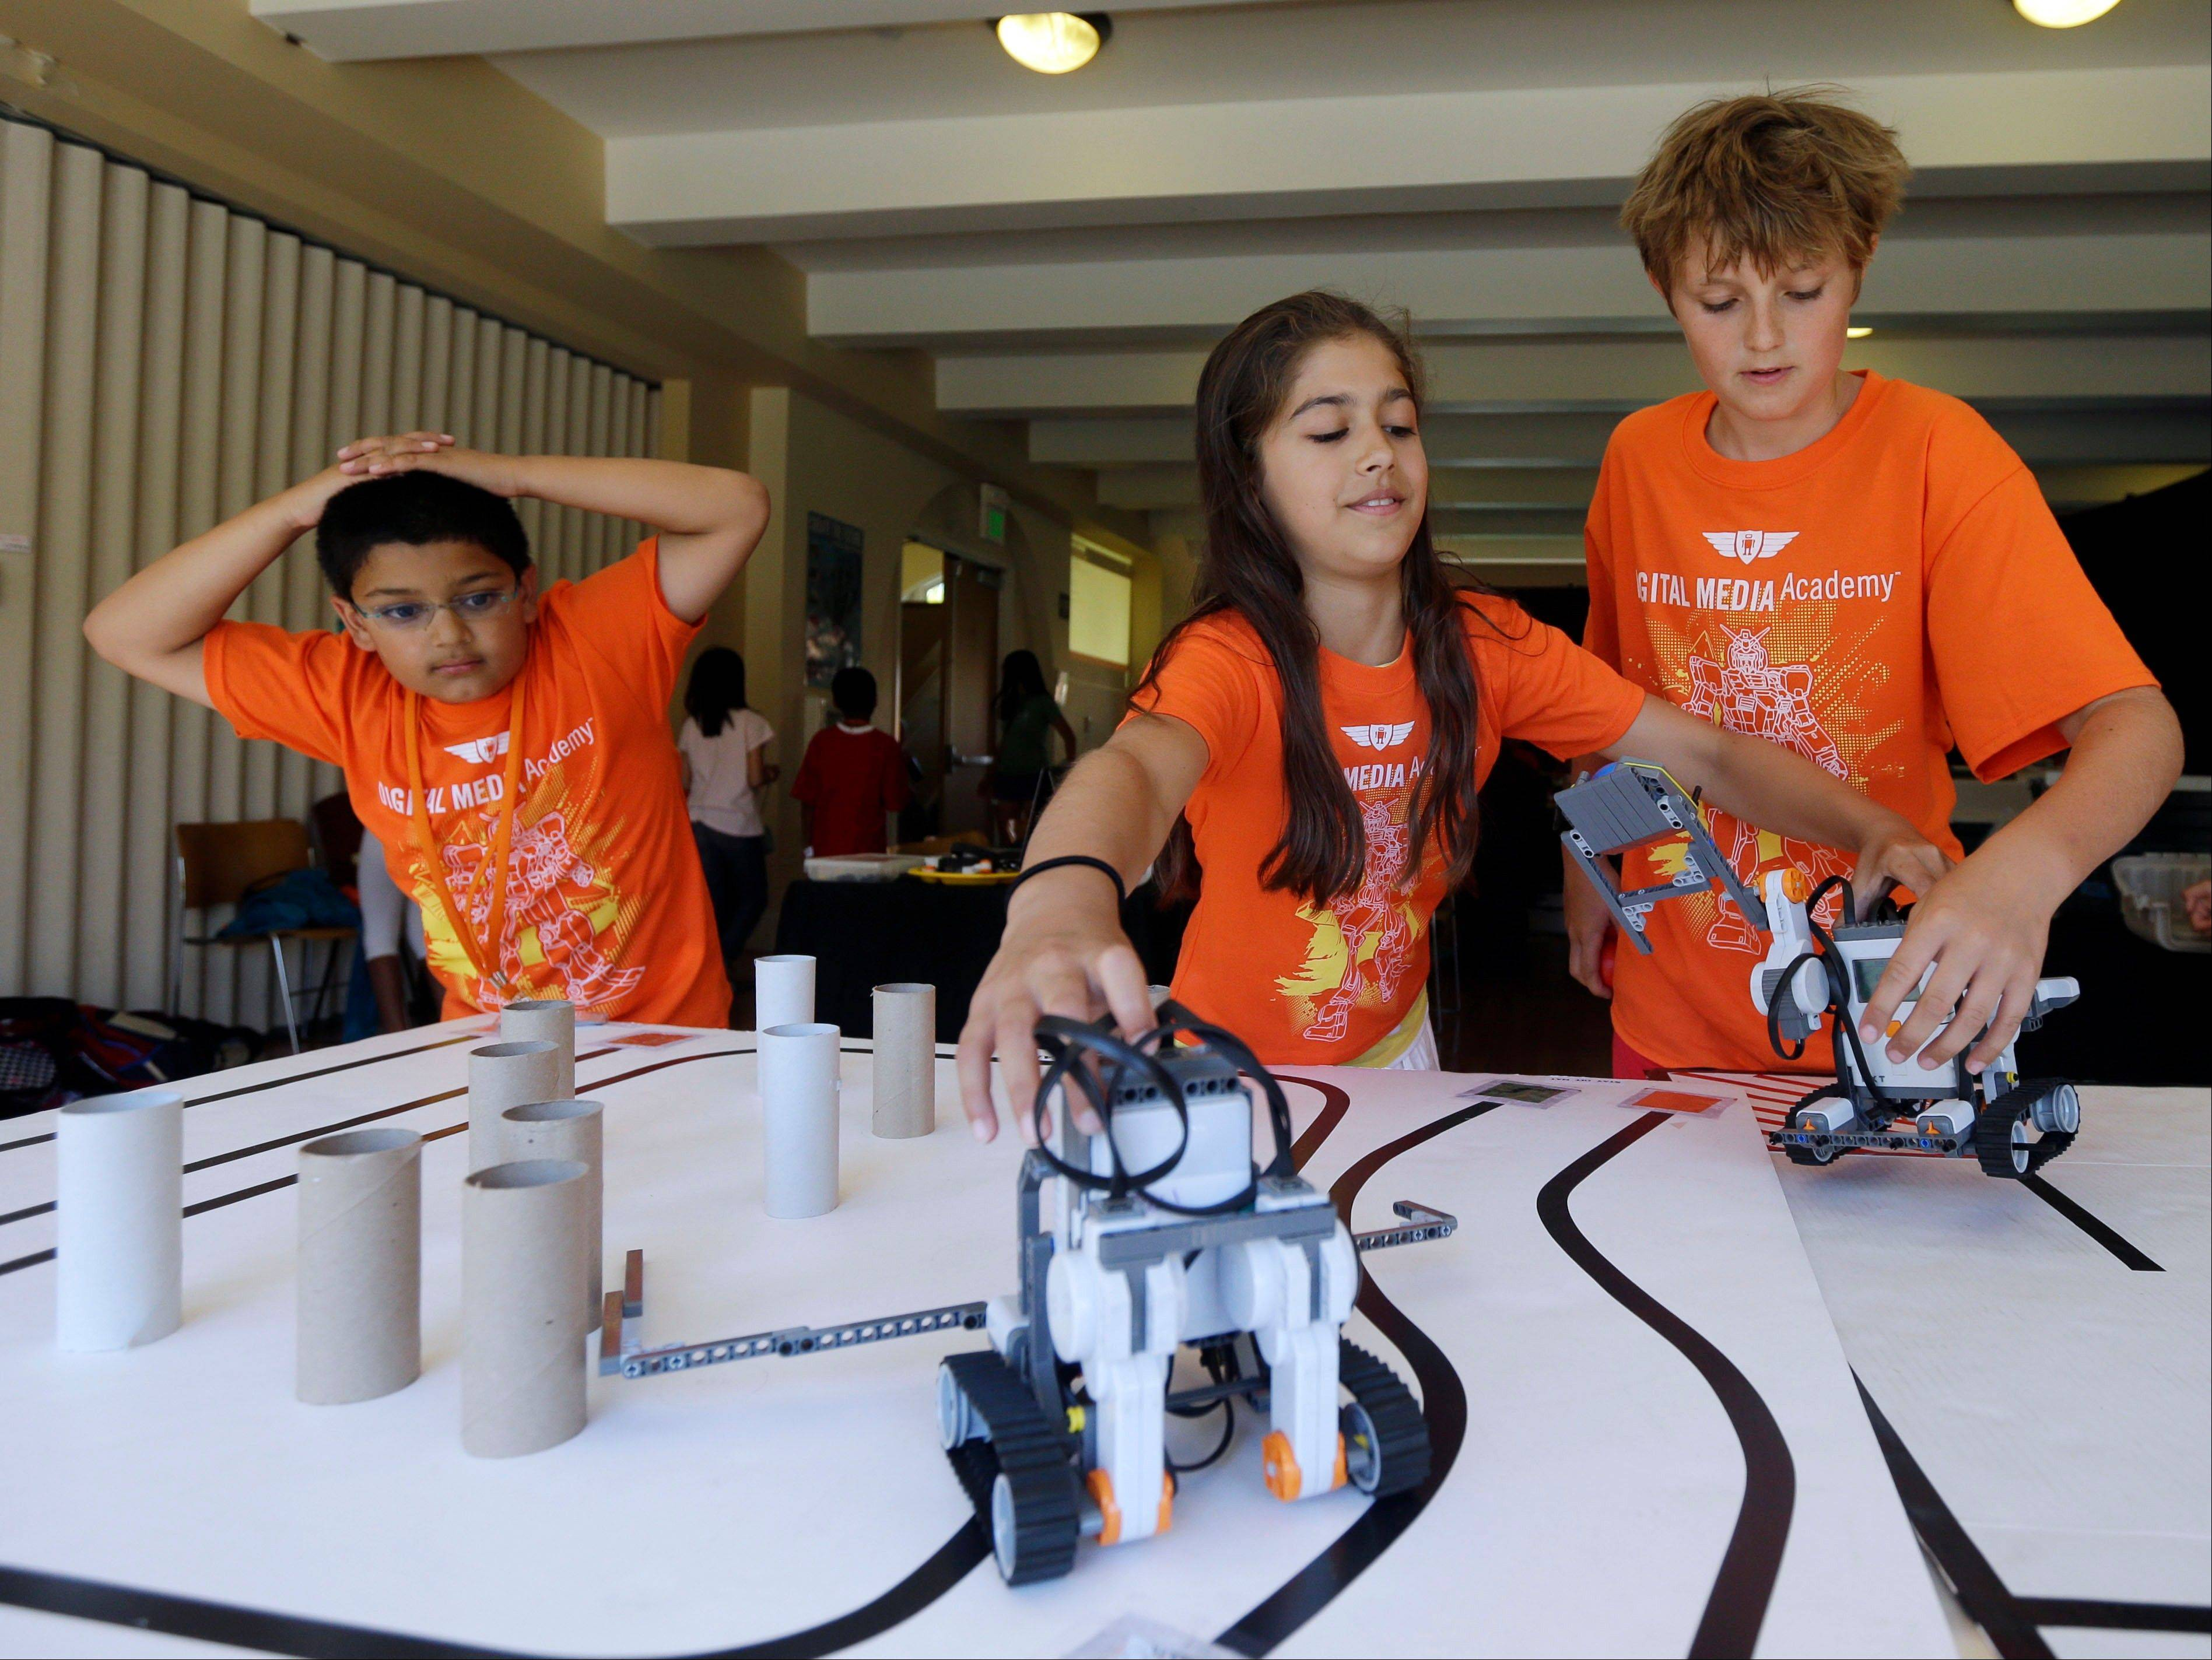 Saci Marty, 10, center, and Callum Brown, 11, at right, put their robotic Lego Mindstorms units through an obstacle course during a Digital Media Academy workshop, in Stanford, Calif.